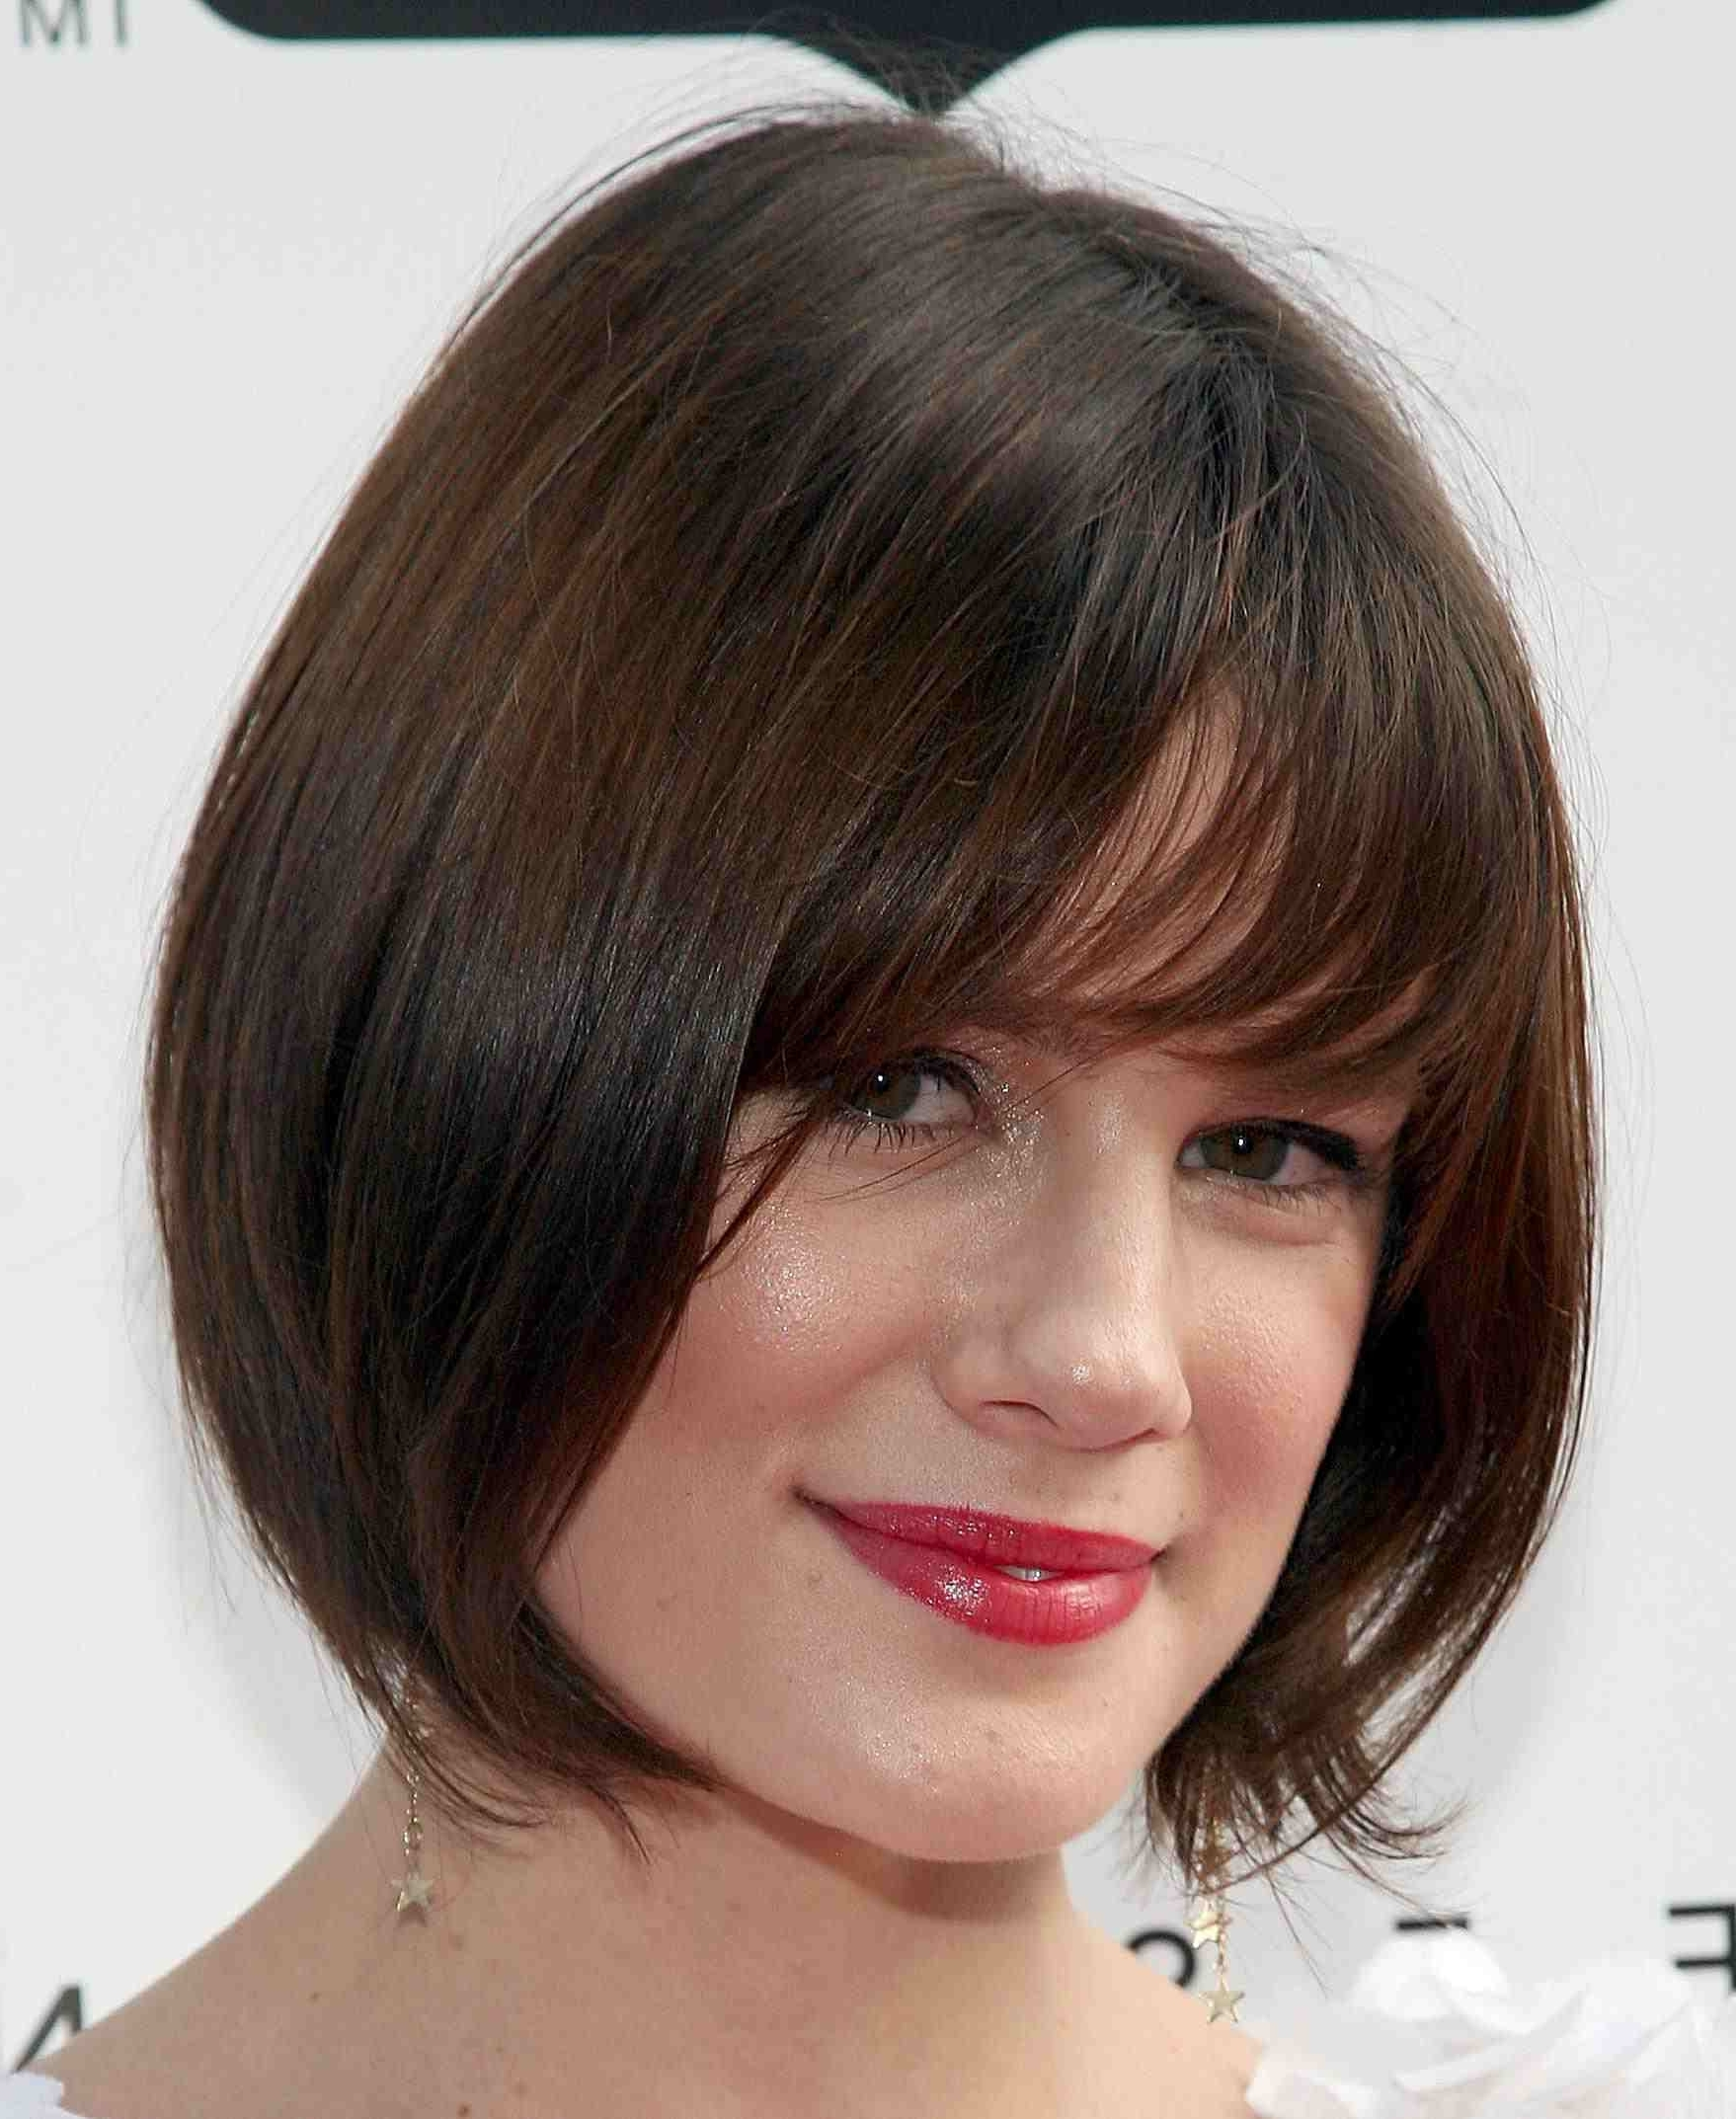 Most Recent Reddish Brown Layered Pixie Bob Hairstyles In From Pixies To Shags: 18 Great Cuts For Short, Brown Hair (View 16 of 20)